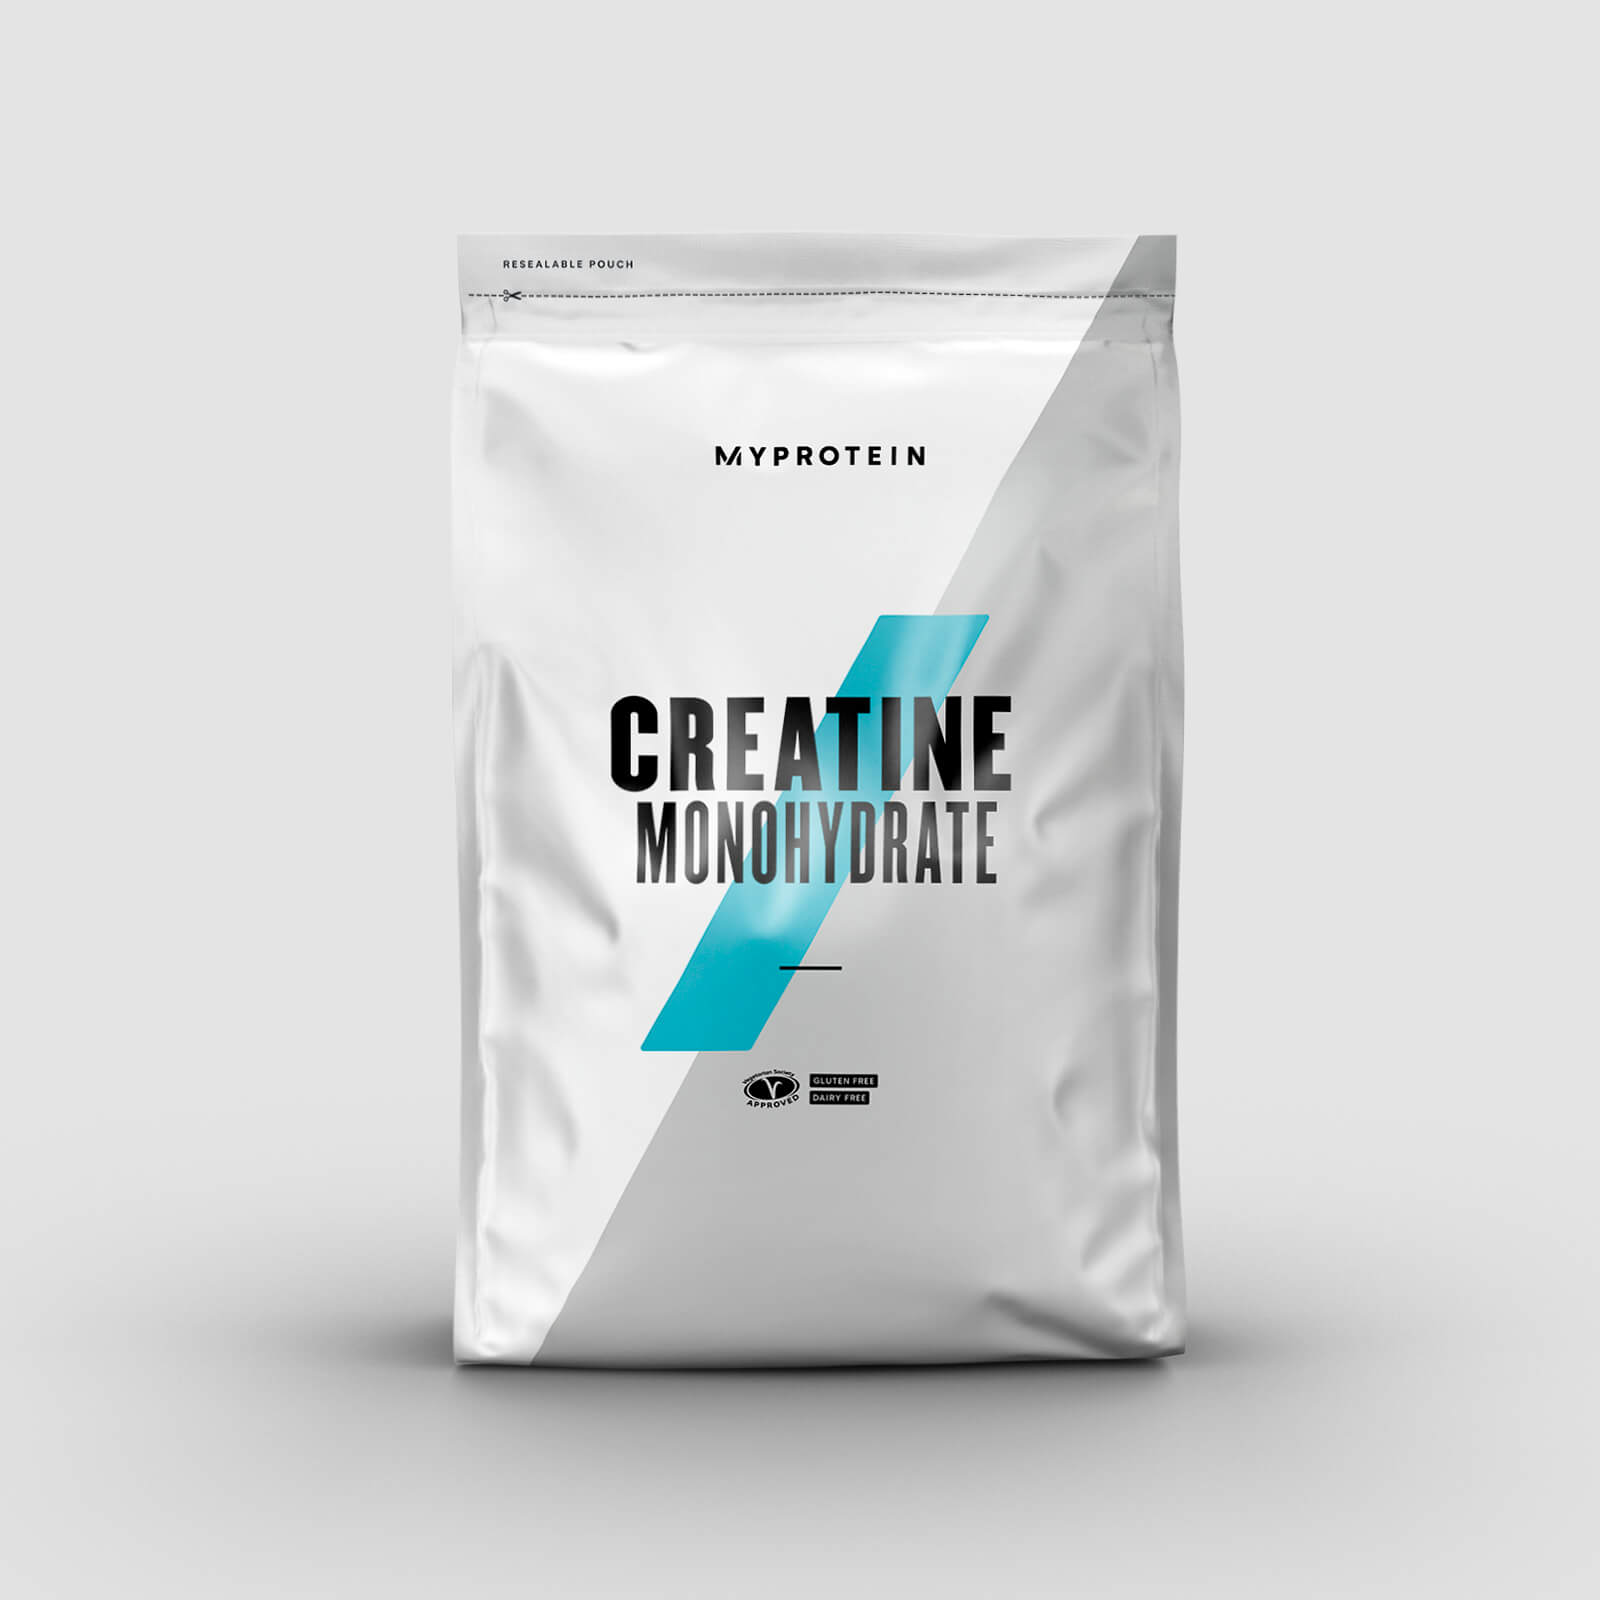 2-Pack Creatine Monohydrate Powder 2.2 lb